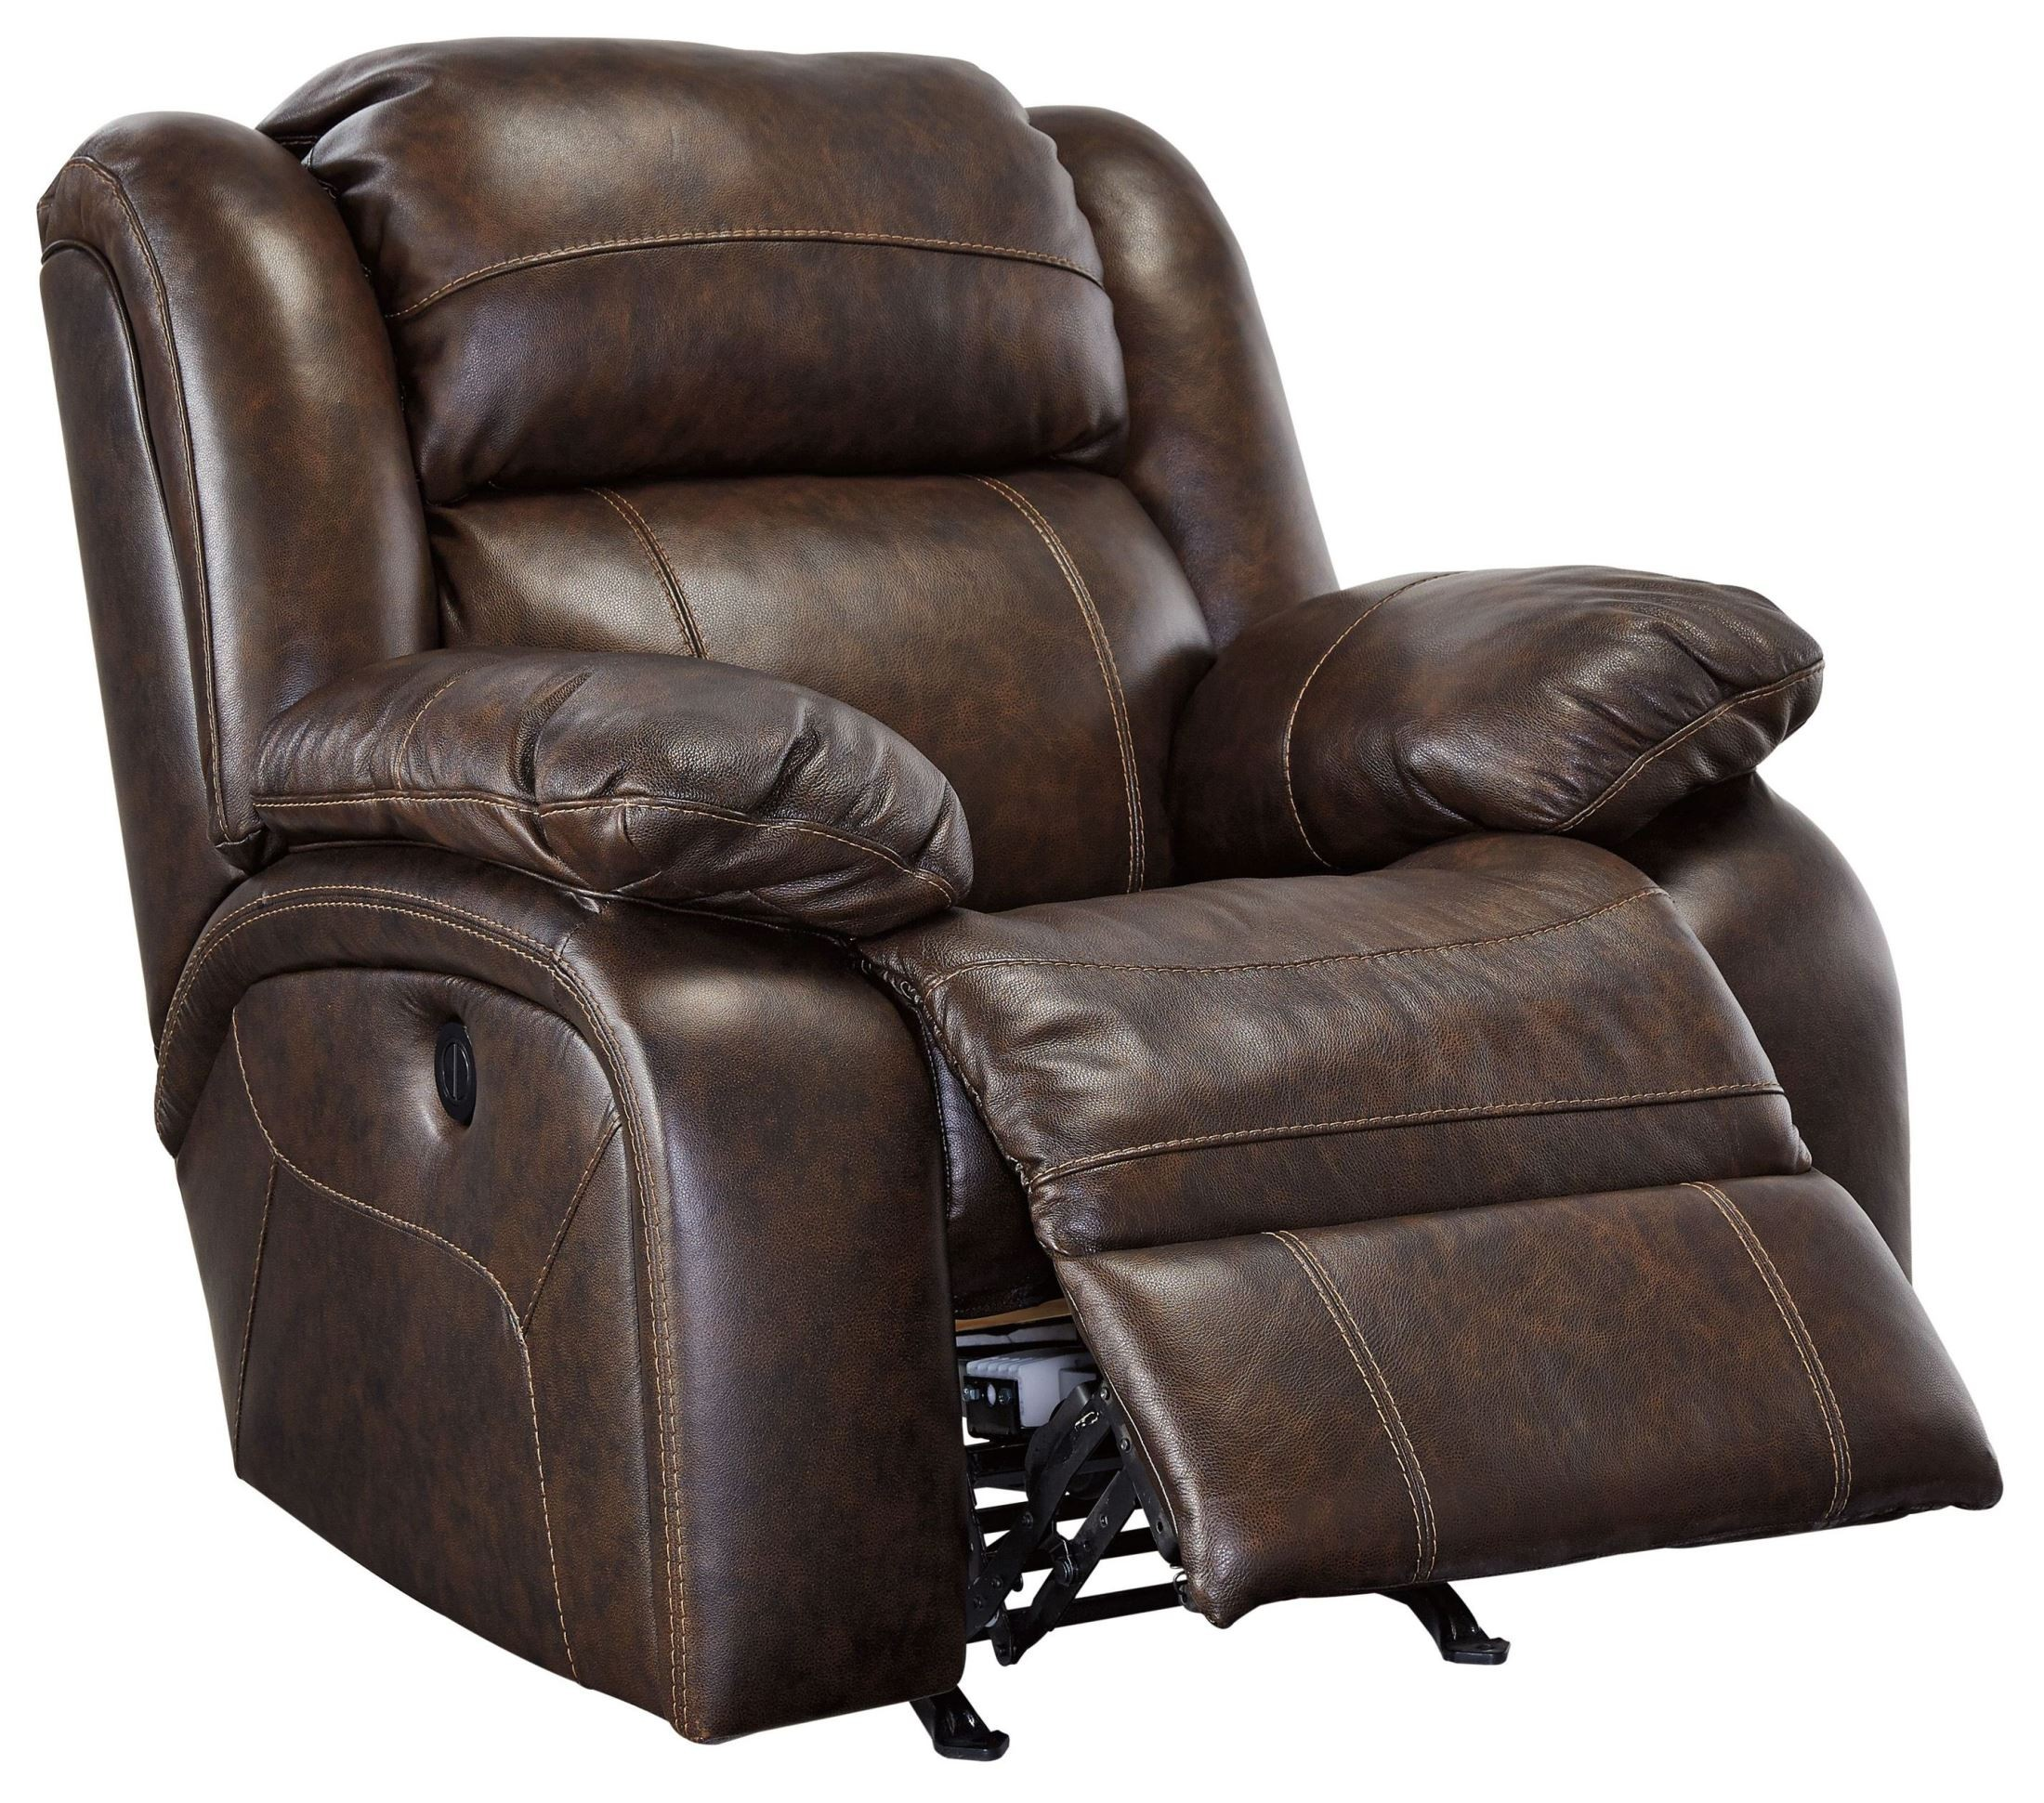 Ashley Furniture Pricing: Branton Antique Power Rocker Recliner From Ashley